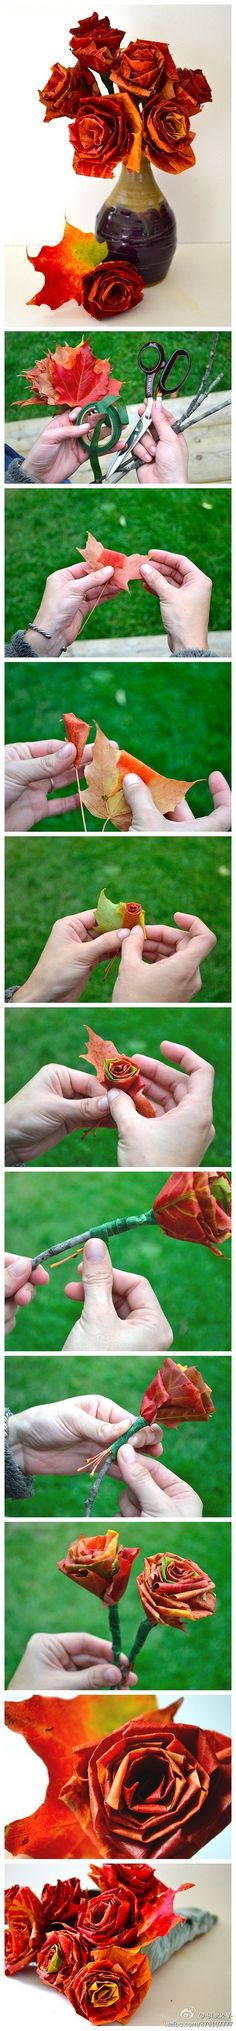 Roses are red, Fall skies are blue, leaves are a-tumbling, so here's what you do... make maple leaf roses! #DIY